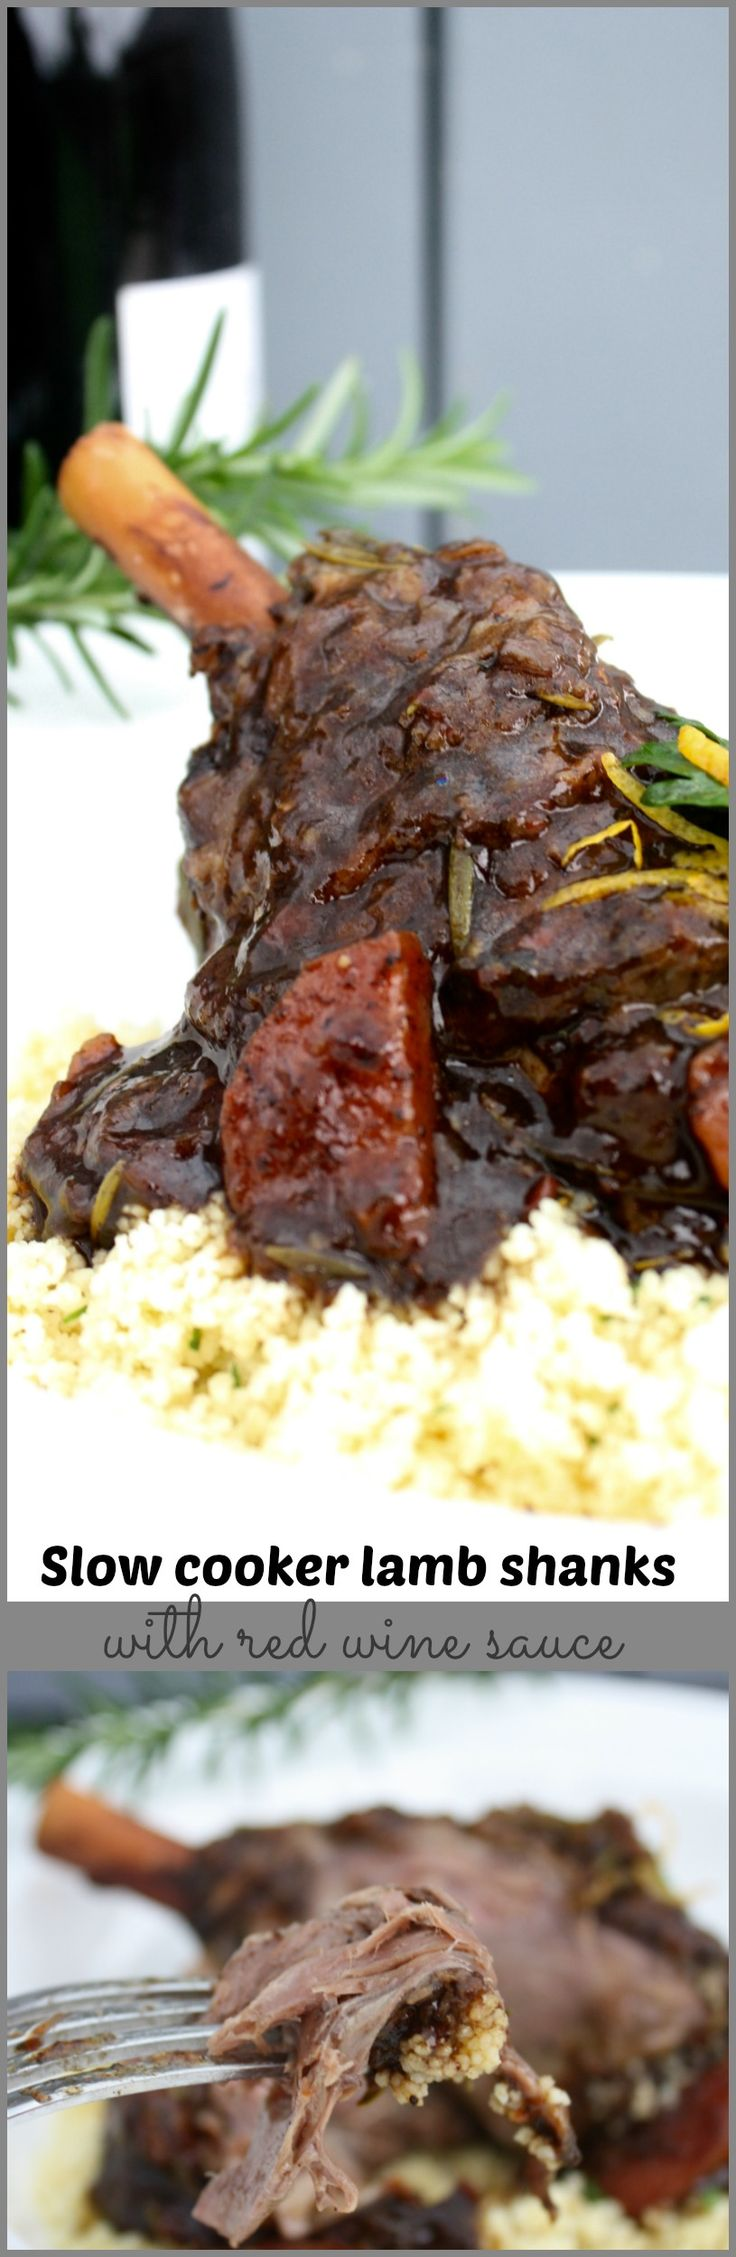 Slow cooker lamb shanks with red wine, balsamic and rosemary sauce - the ultimate winter warmer meal.